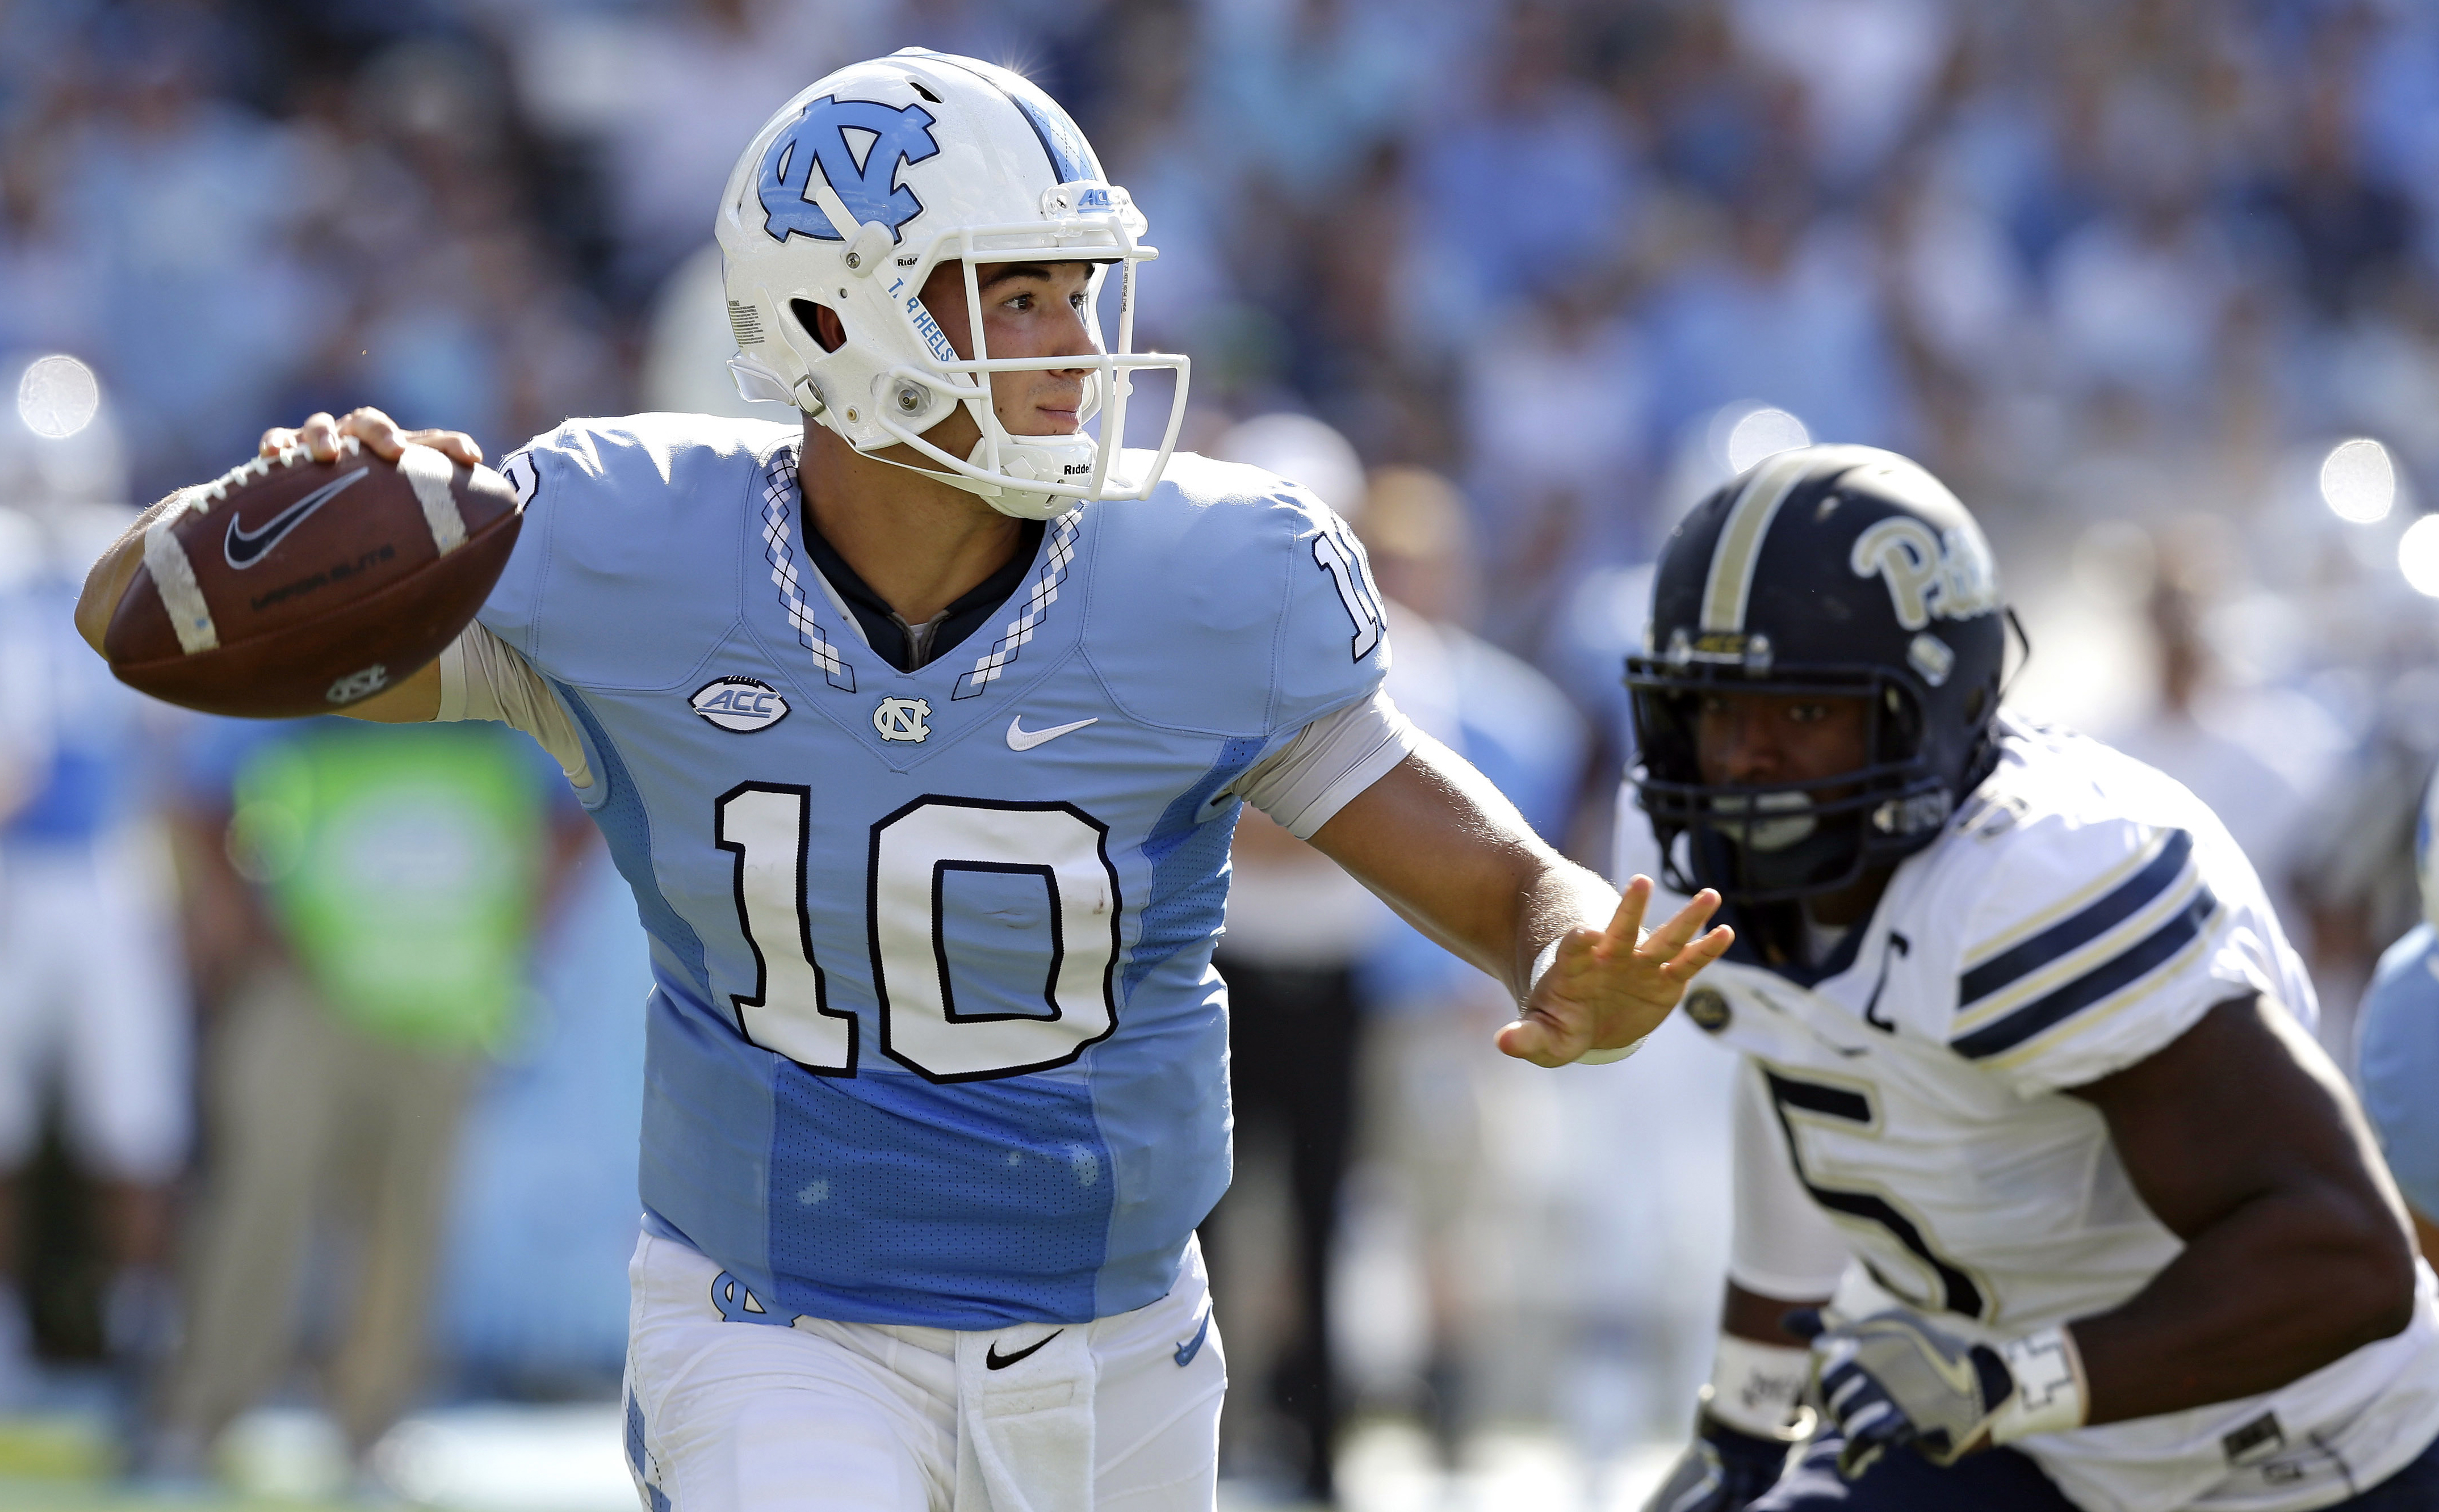 FILE - In this Sept. 24, 2016, file photo, North Carolina quarterback Mitch Trubisky (10) throws a pass as Pittsburgh's Ejuan Price (5) rushes during the first half of an NCAA college football game in Chapel Hill, N.C. Trubisky has thrown for at least 400